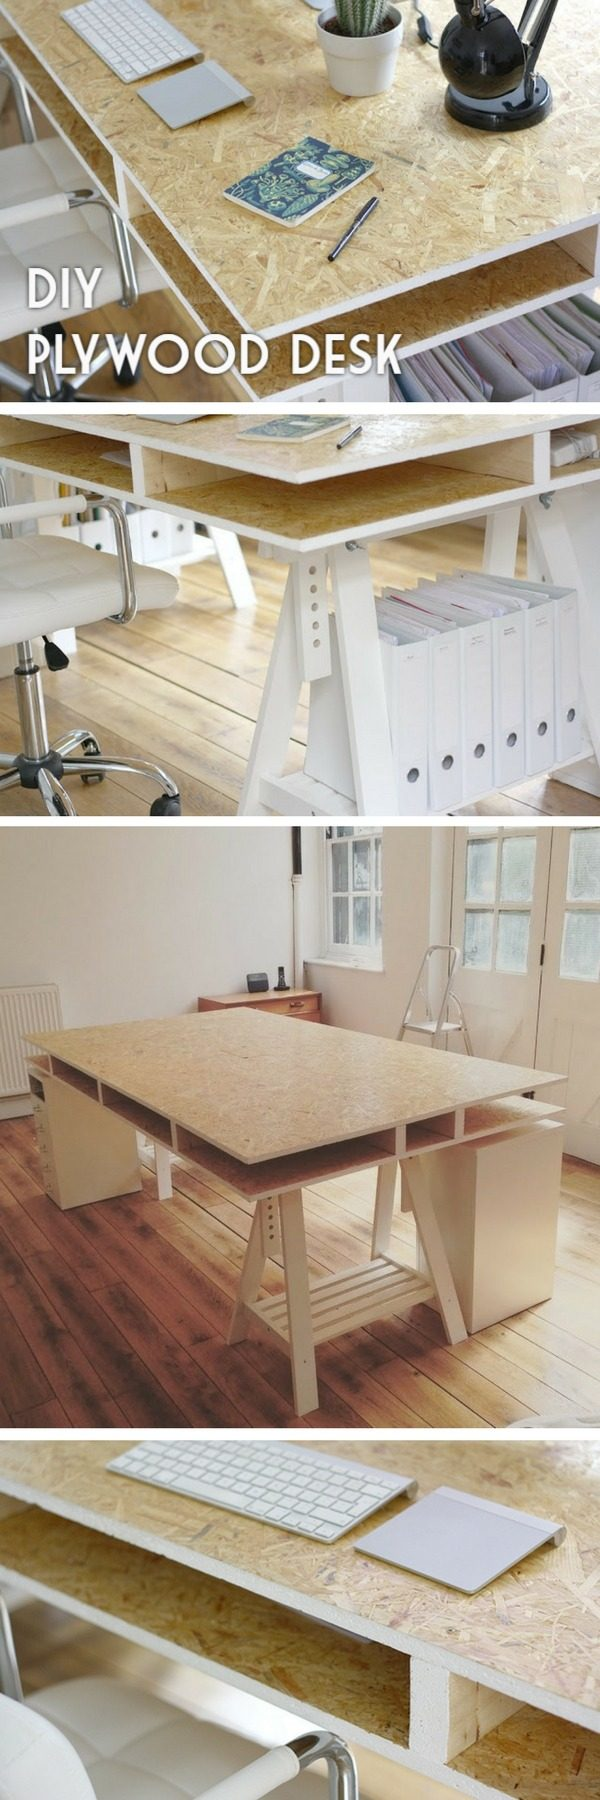 Check out the tutorial how to build a cheap and easy DIY desk